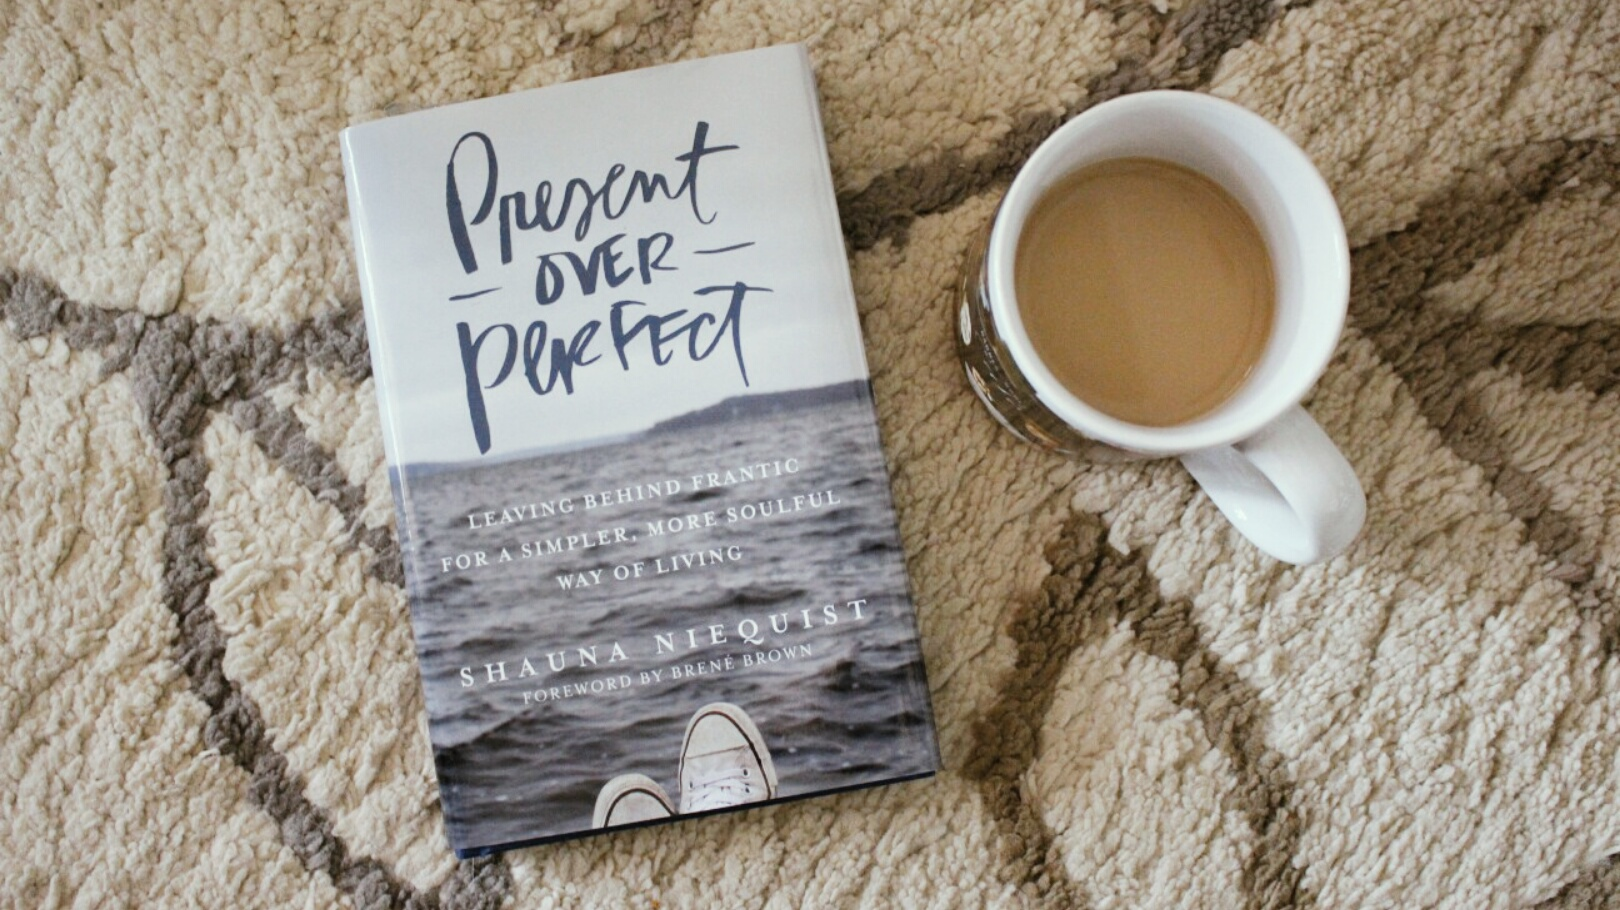 Present Over Perfect by Shauna Niequist     casee marie A collection of thought provoking essays  Present Over Perfect explores the  discoveries we make when we slow down  simplify  and choose to live with  more